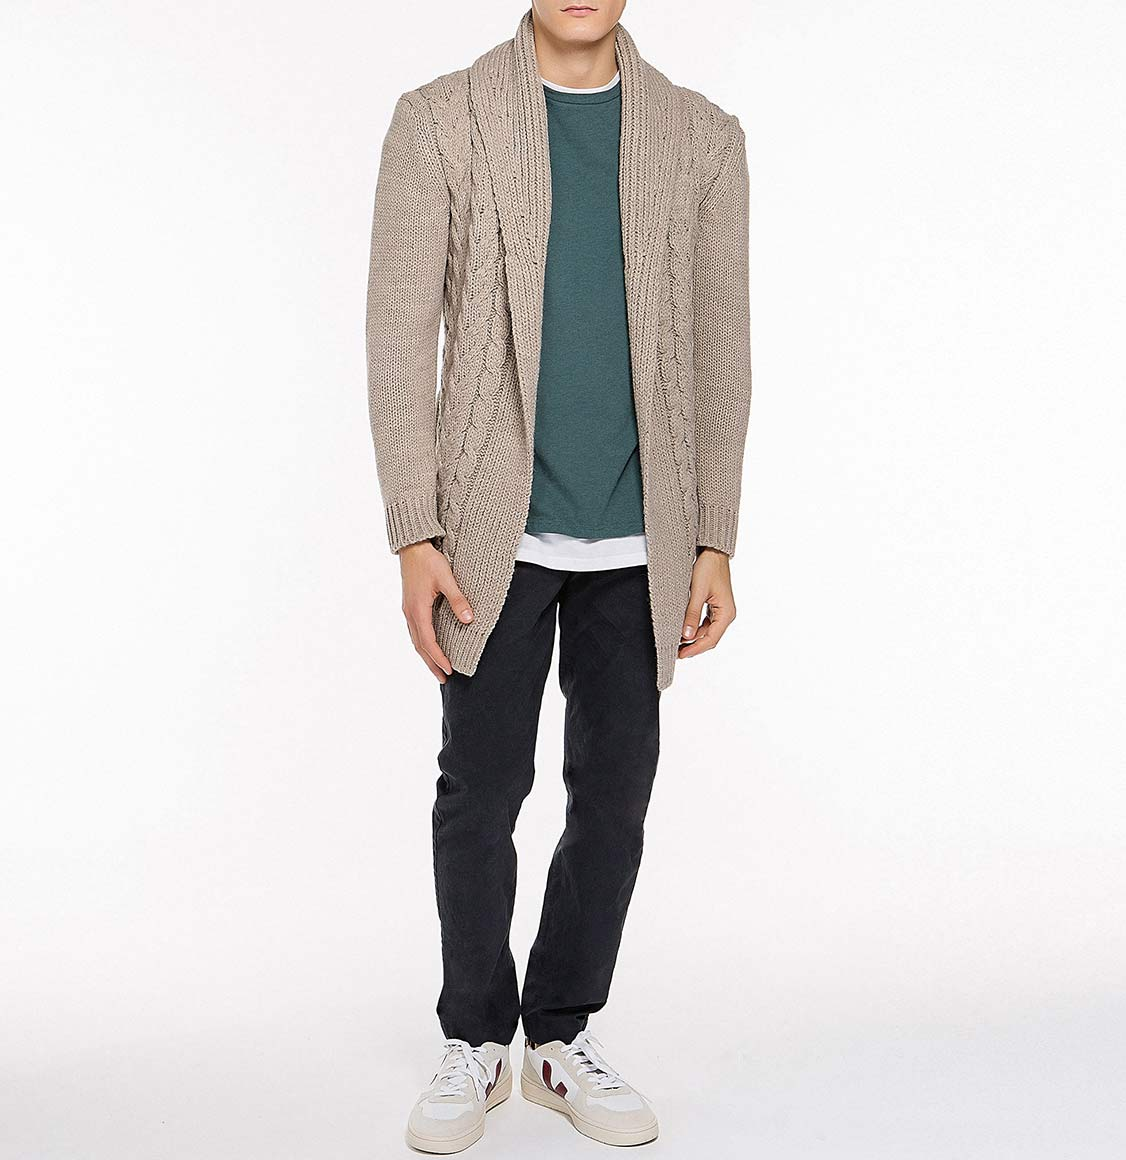 Shawl Collar Wool Blend Belted Cardigan Beige | The Project Garments - Model